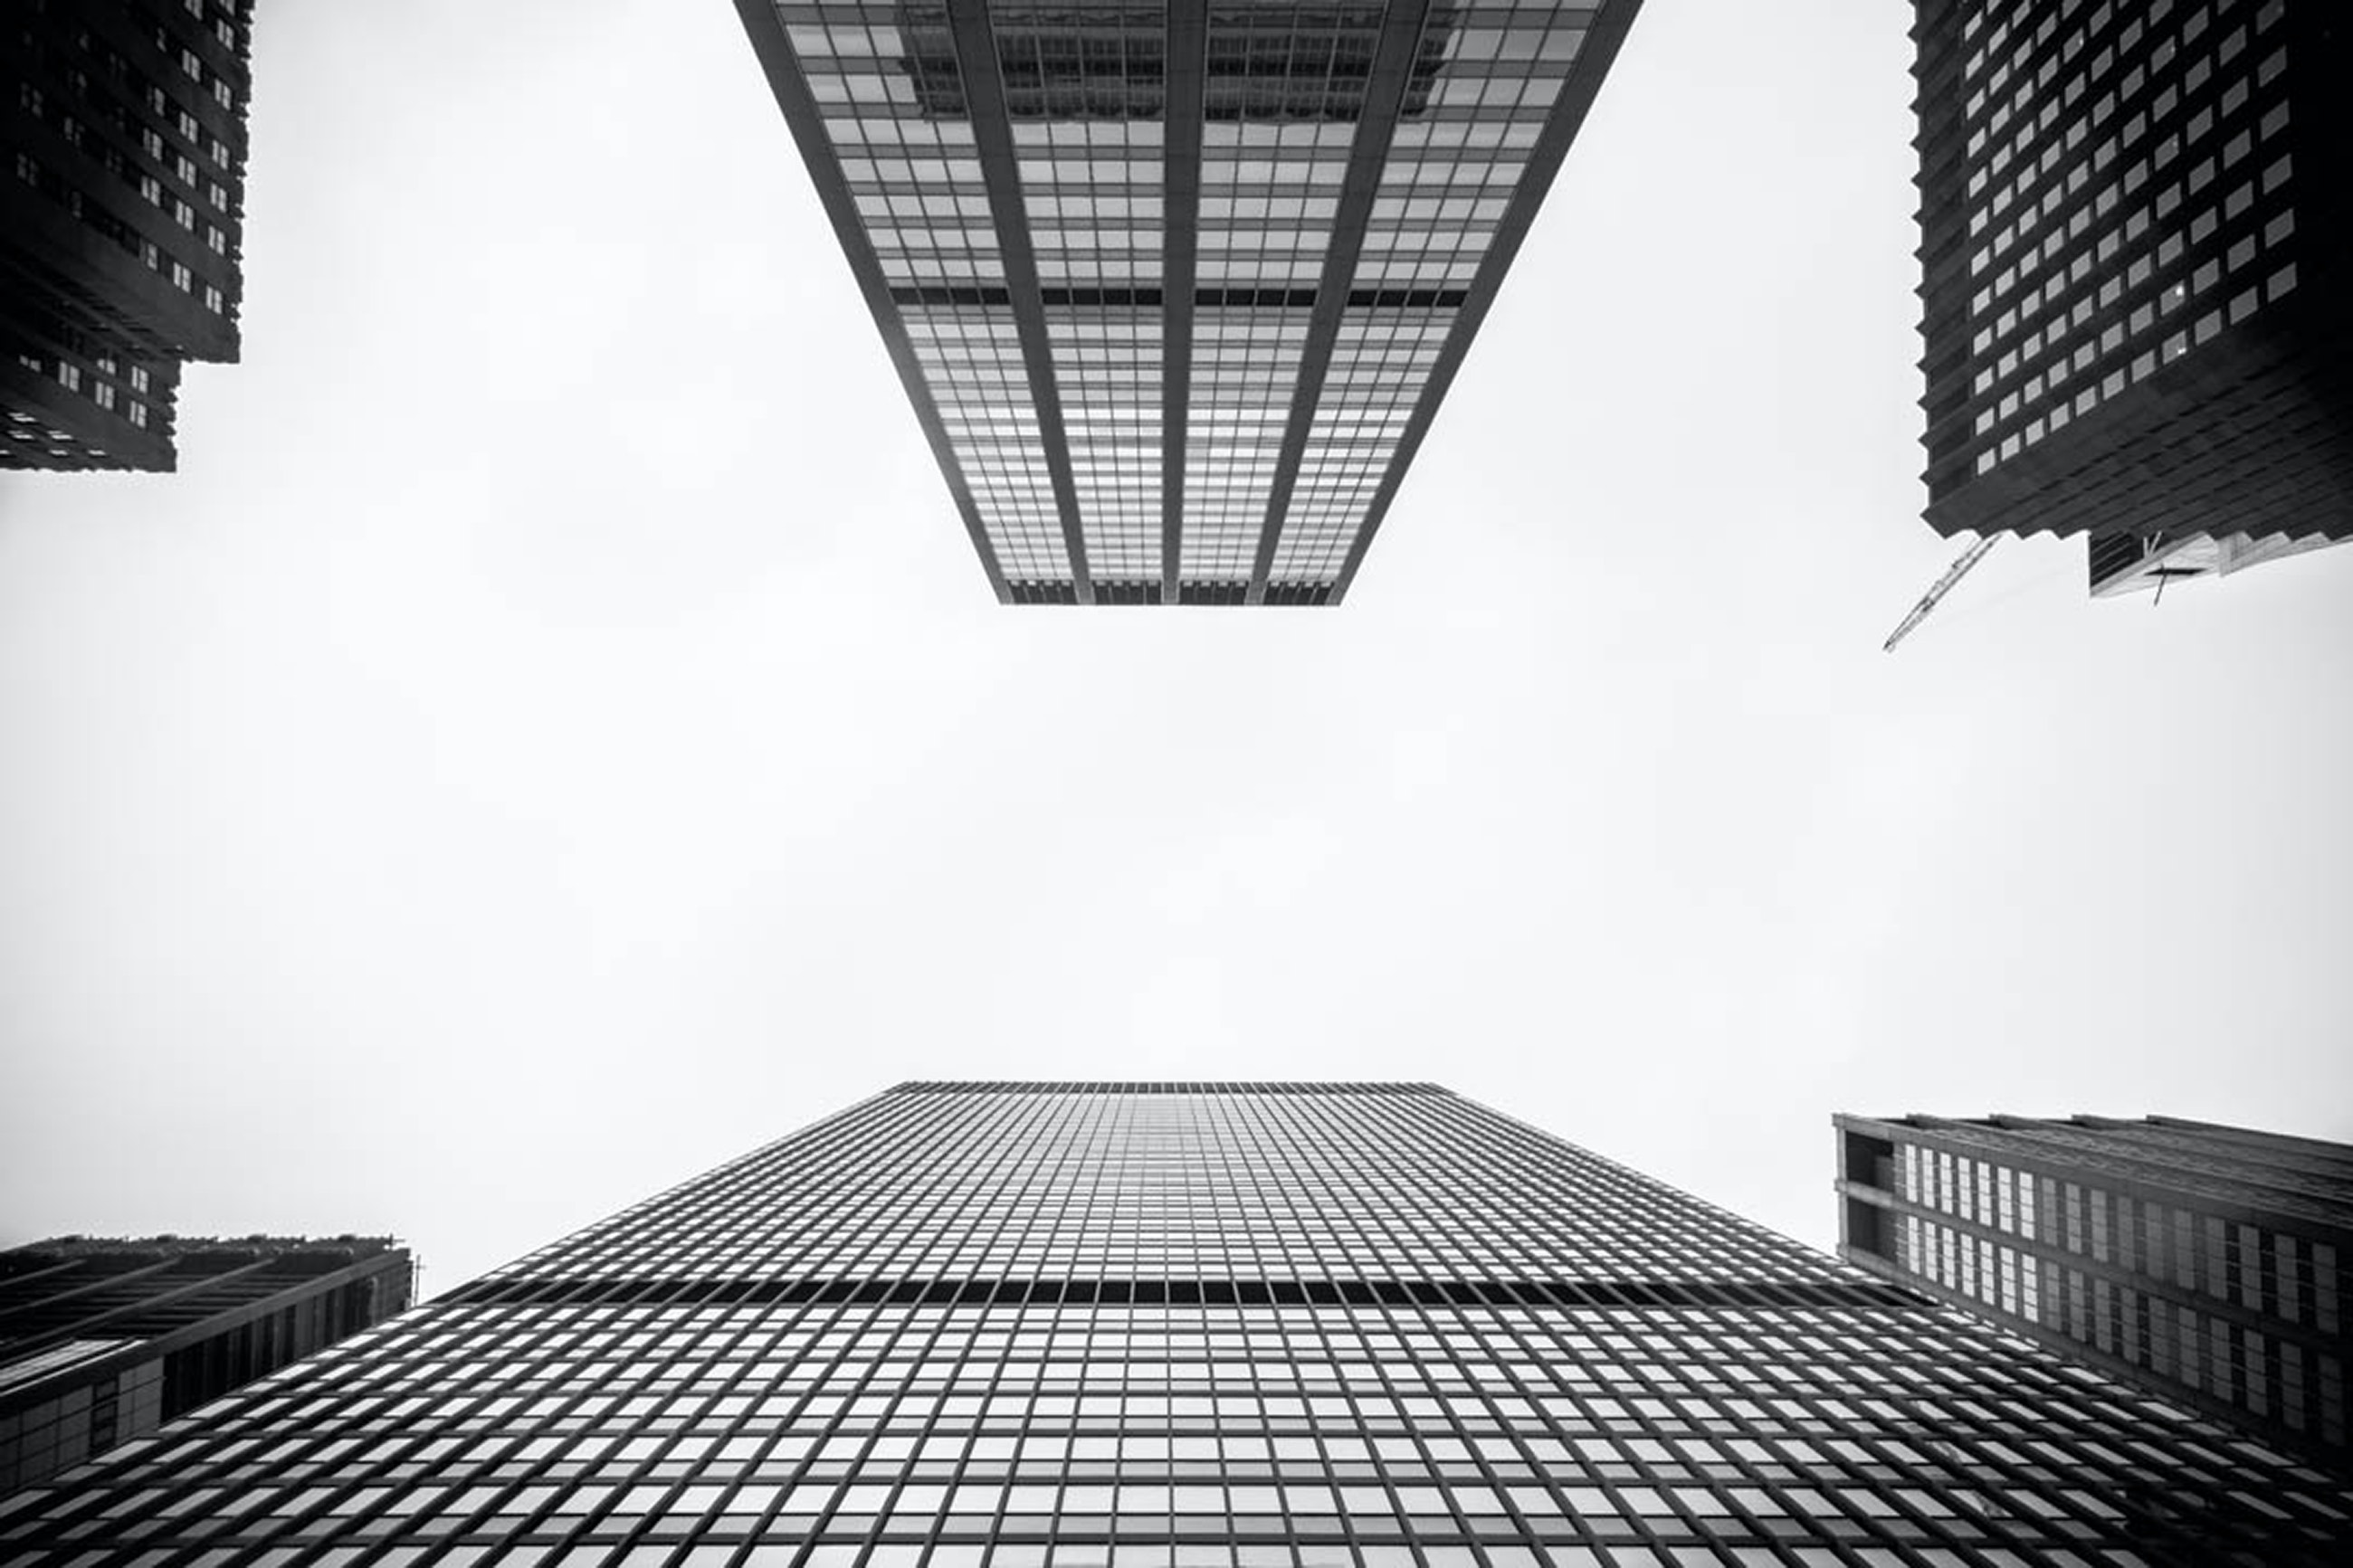 Low Angle Photography Of Building Free Stock Photo: Low Angle Photography Of Buildings · Free Stock Photo